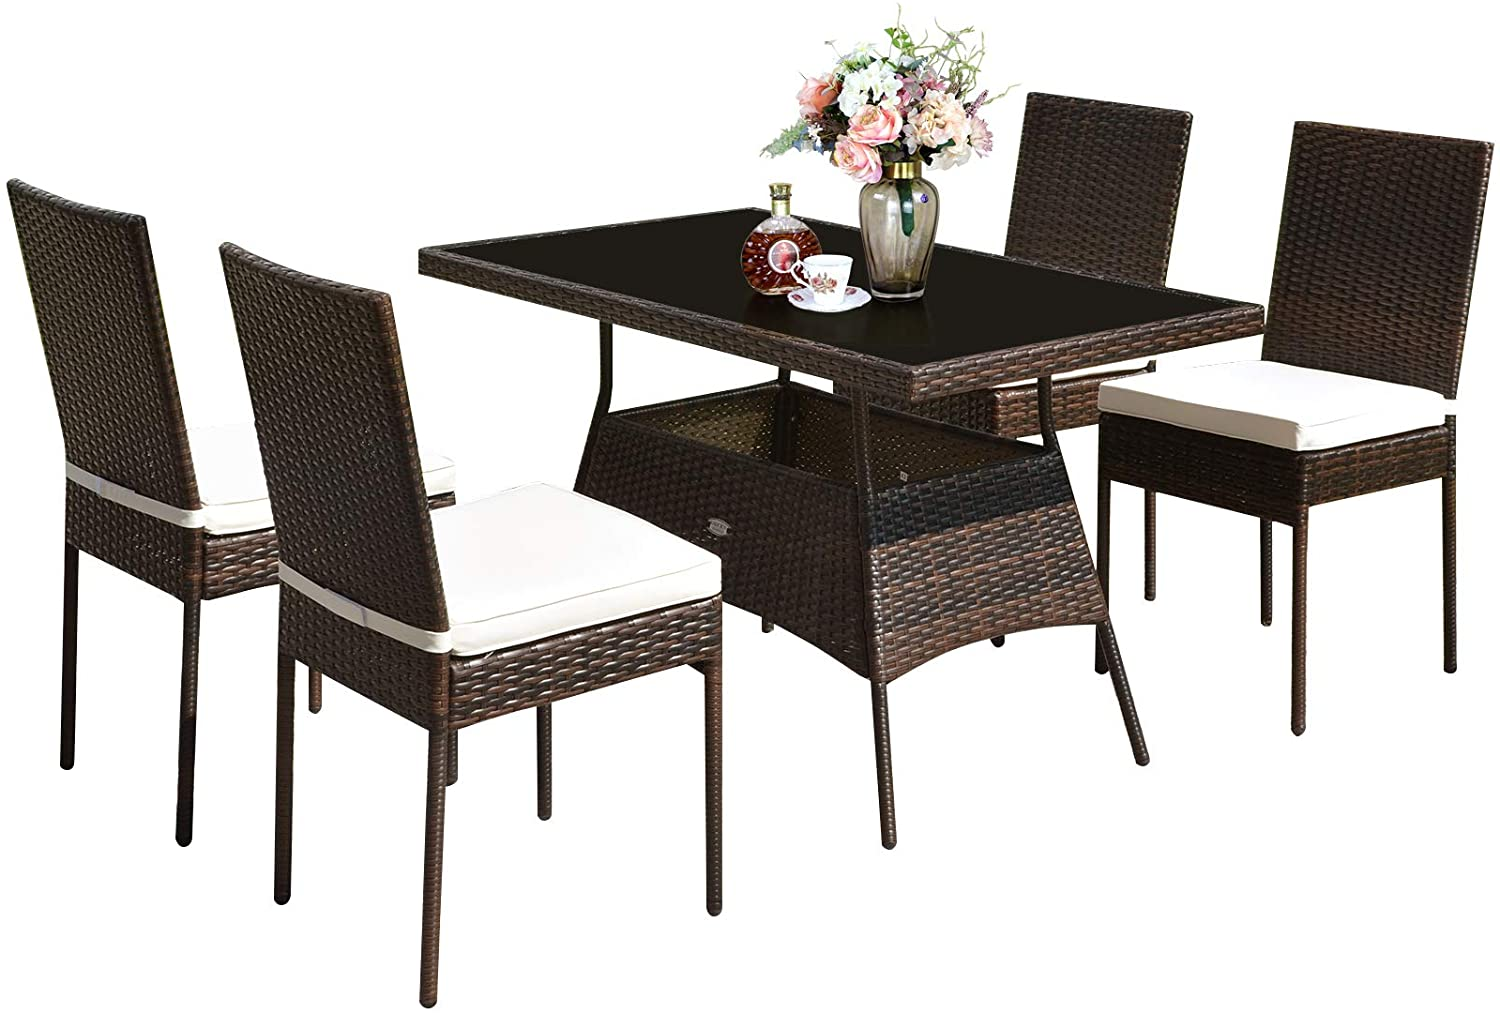 Tangkula 5 Pcs Patio Wicker Dining Set Outdoor Rattan Table And Chairs With W Tempered Glass Table Top Padded Cushions Wicker Patio Conversation Furniture Set For Balcony Patio Garden Poolside Kitchen Dining Amazon Com